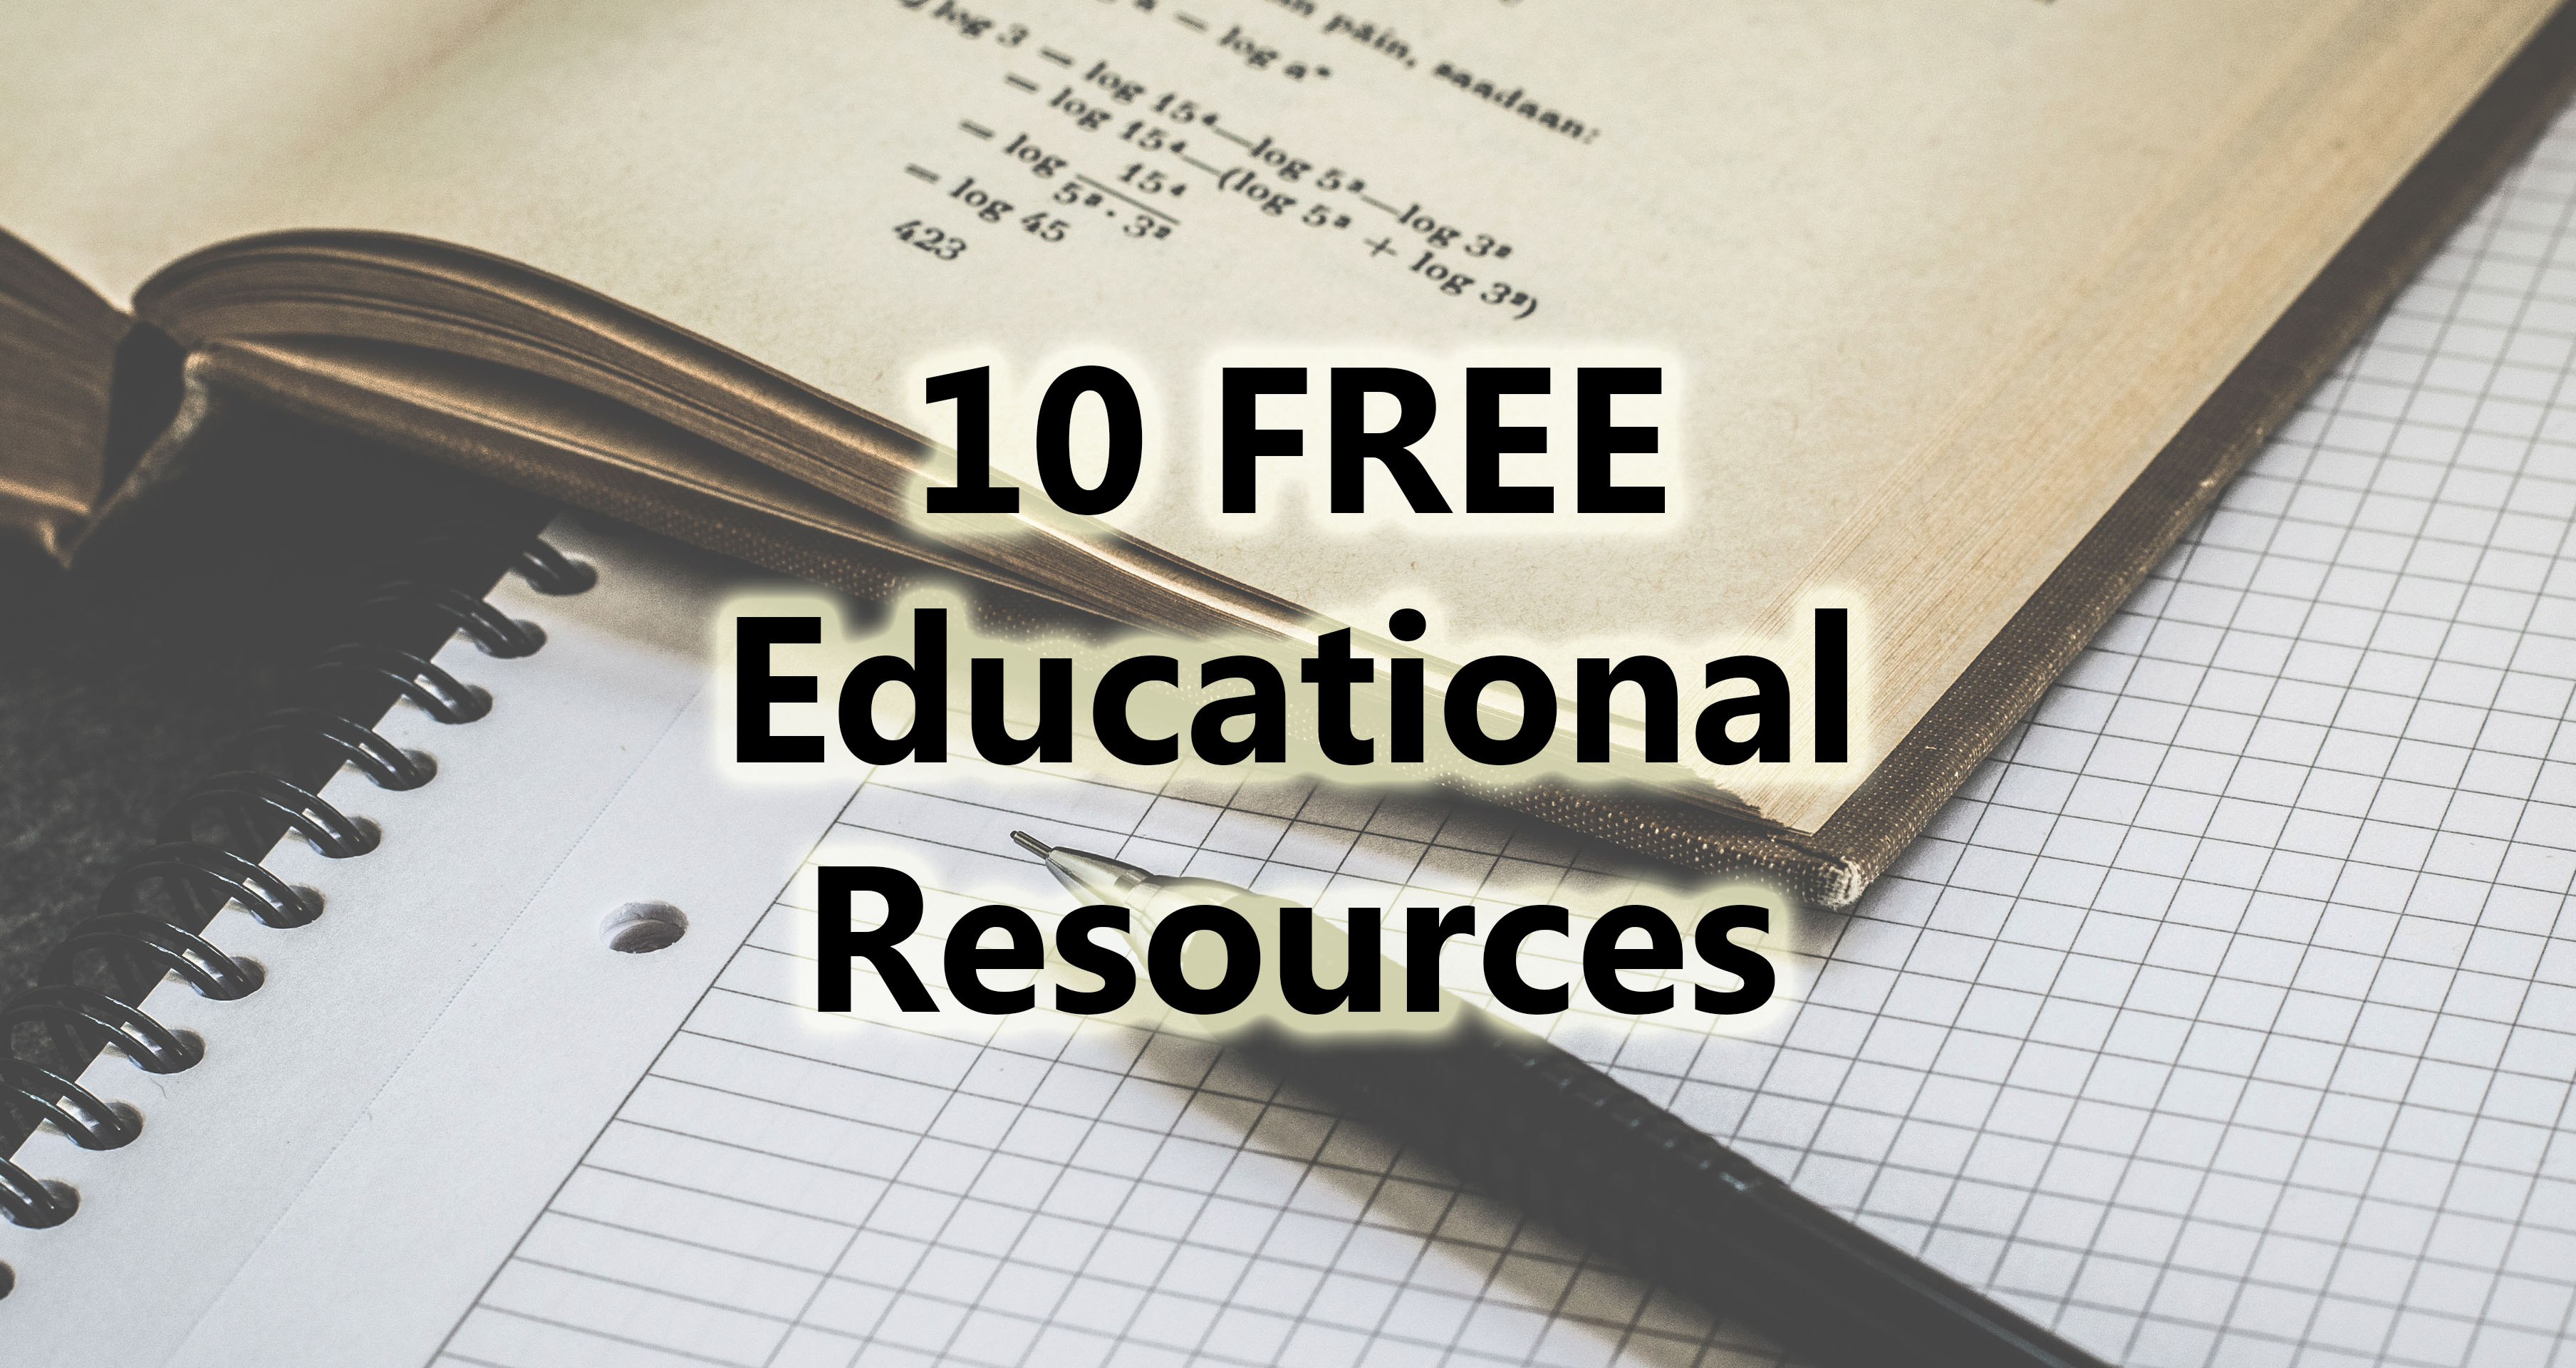 10 FREE Educational Resources | Crania Schools